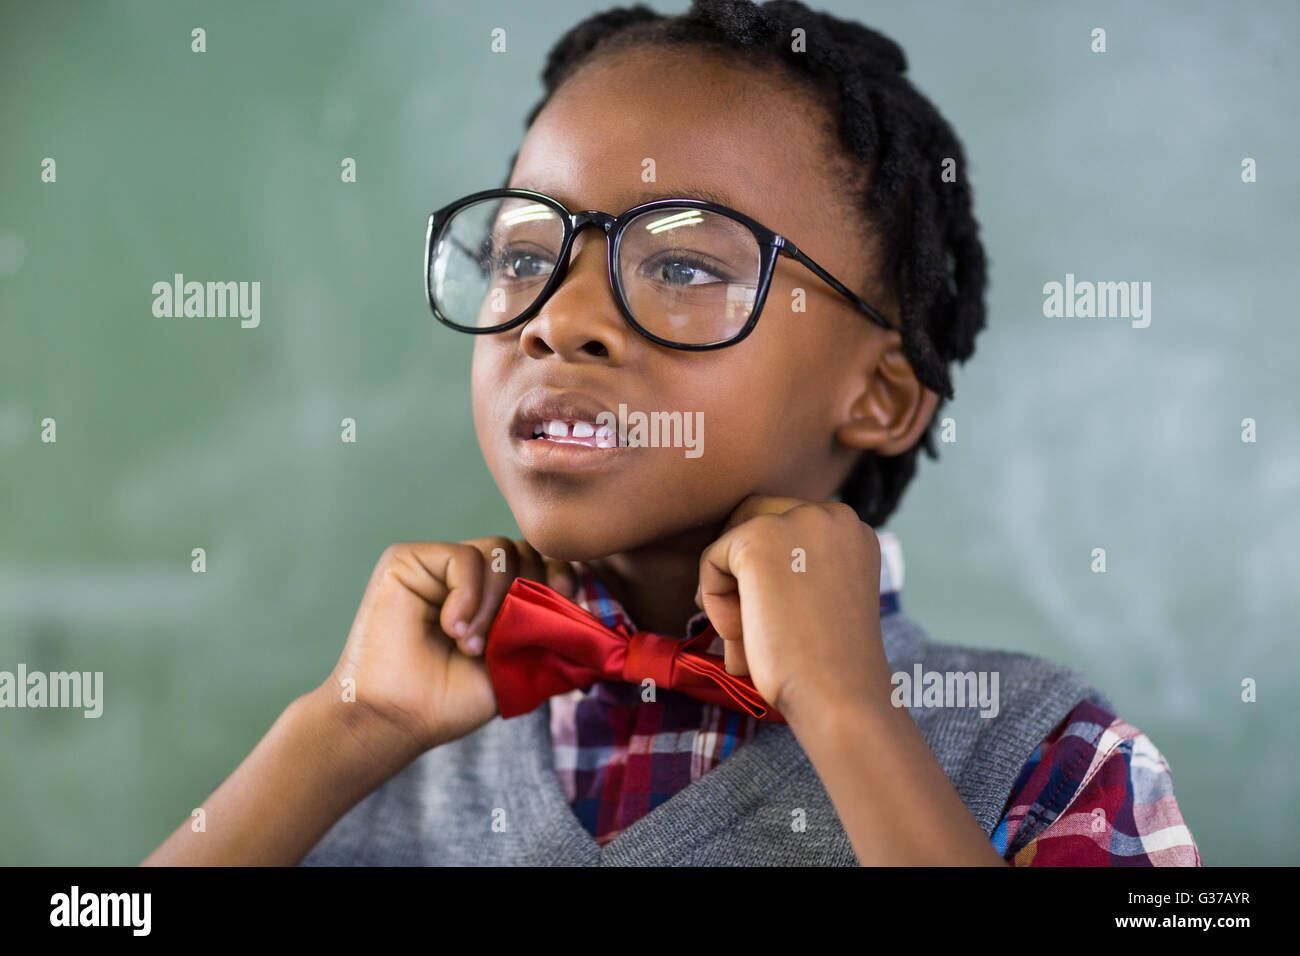 Thoughtful schoolboy adjusting a bow tie in classroom - Stock Image